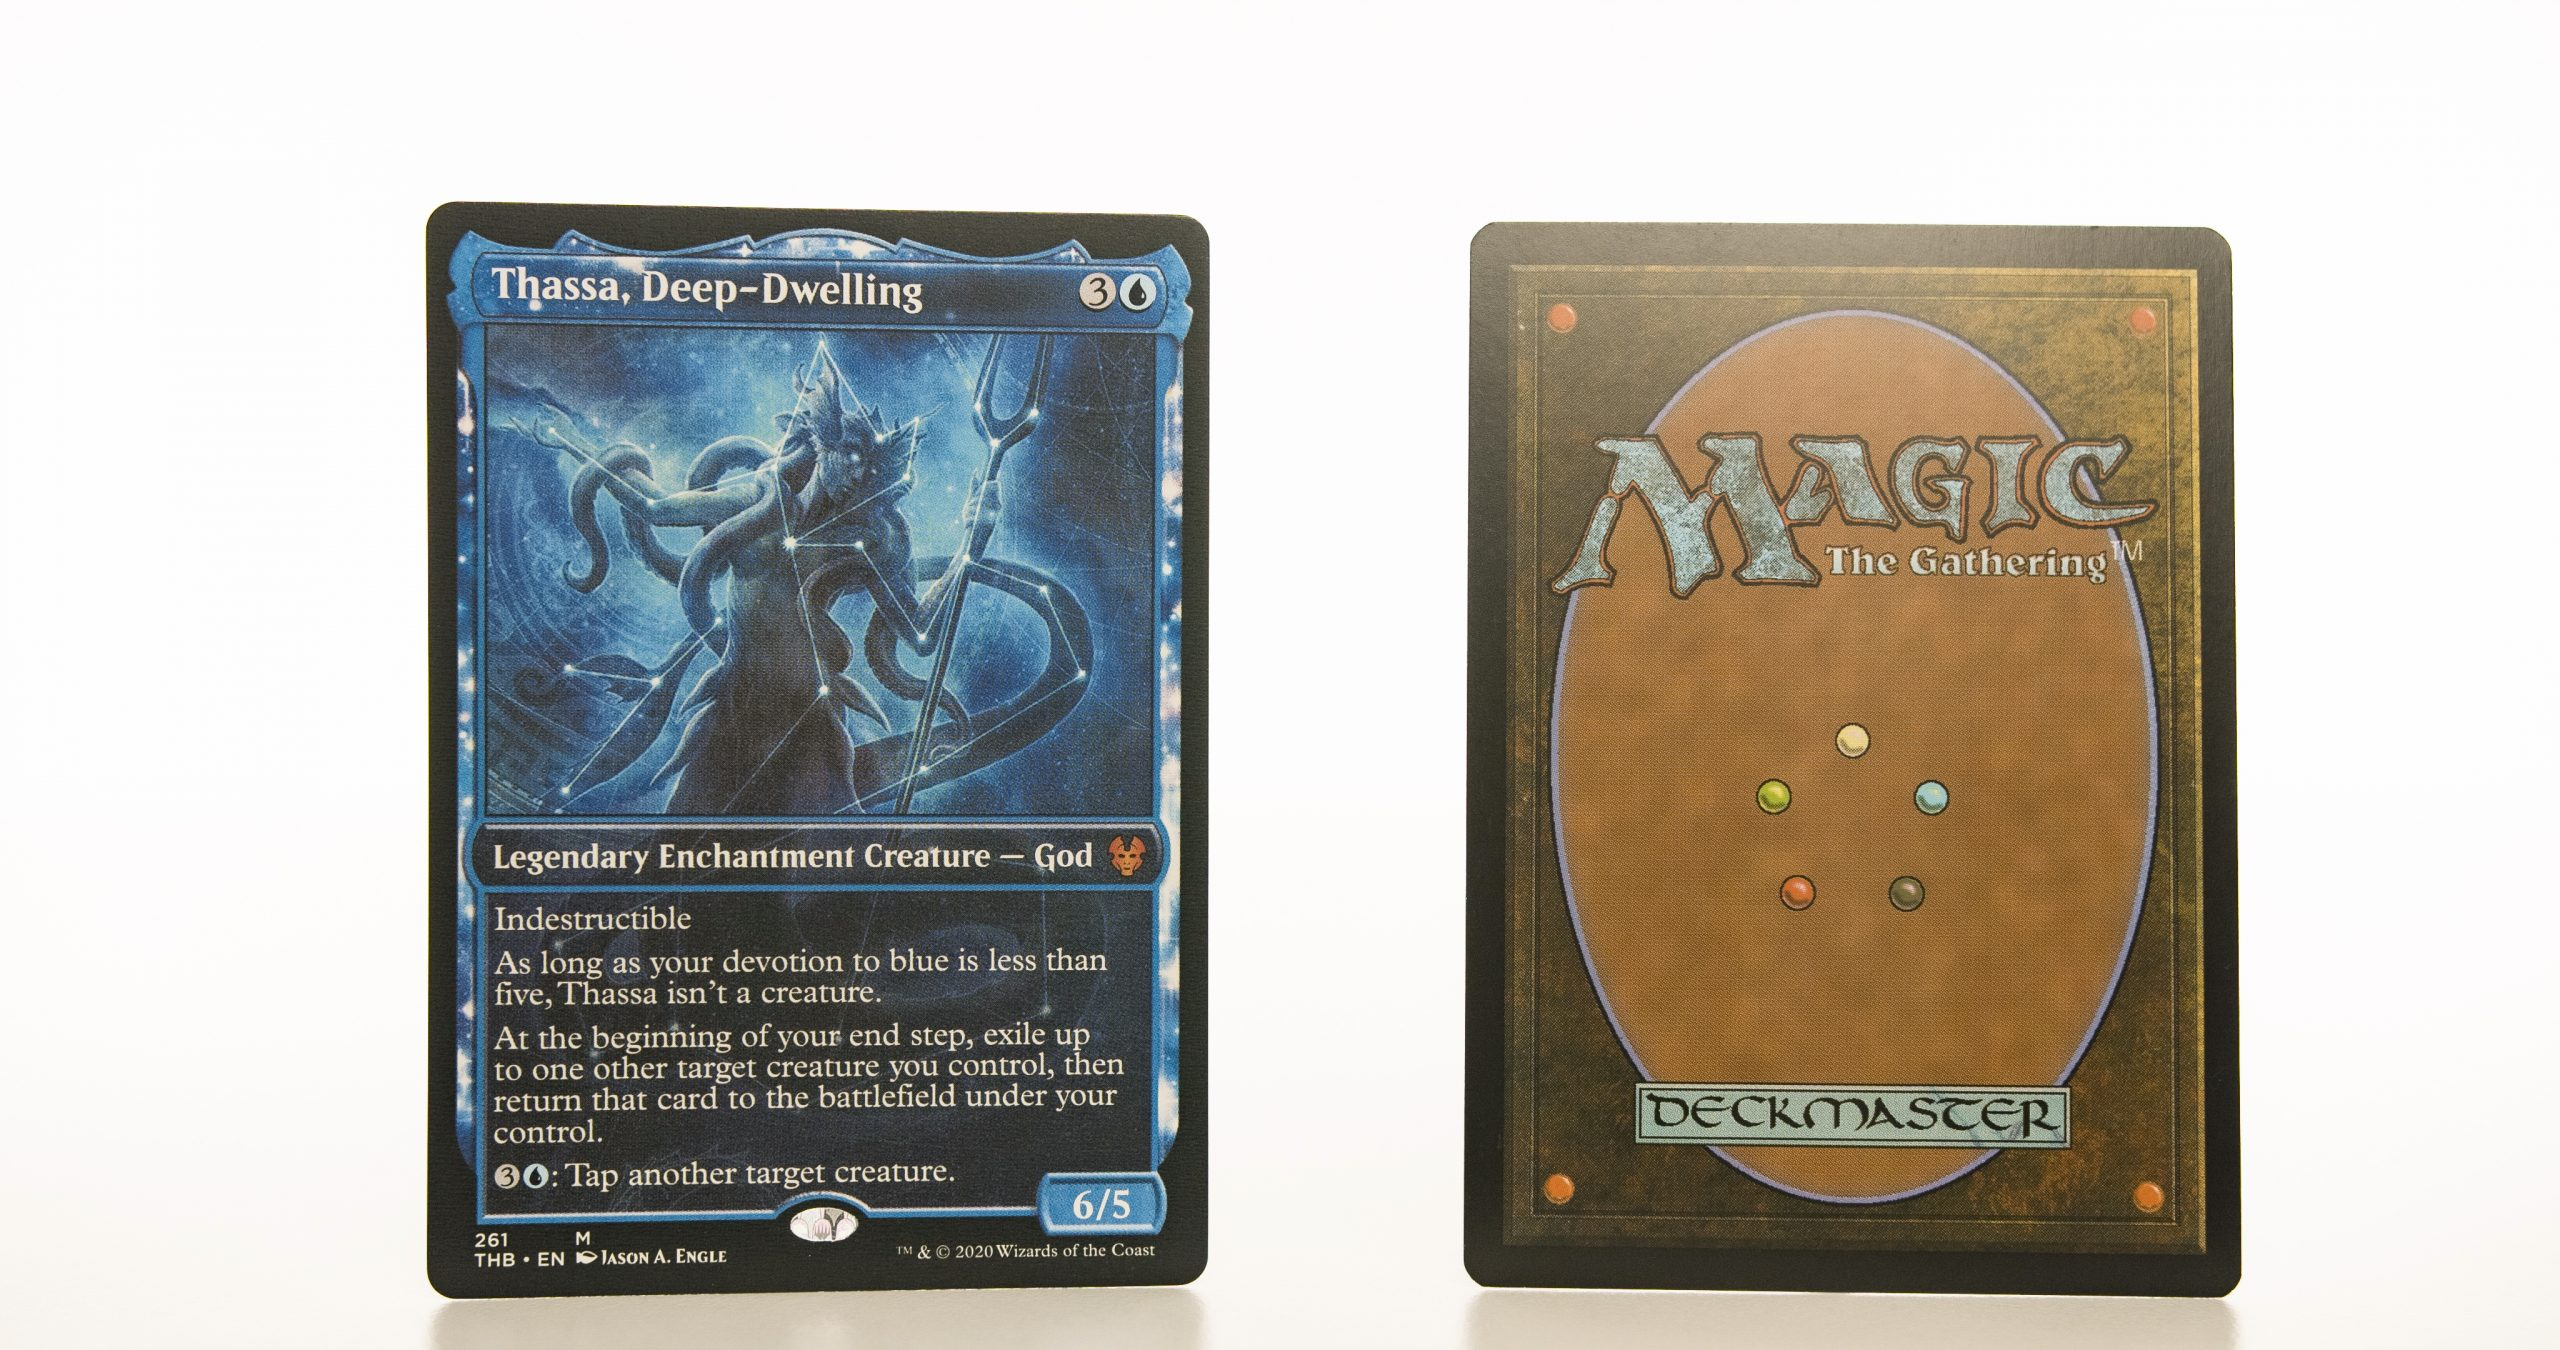 Thassa, Deep-Dwelling extended art THB Theros beyond death hologram mtg proxy magic the gathering tournament proxies GP FNM available